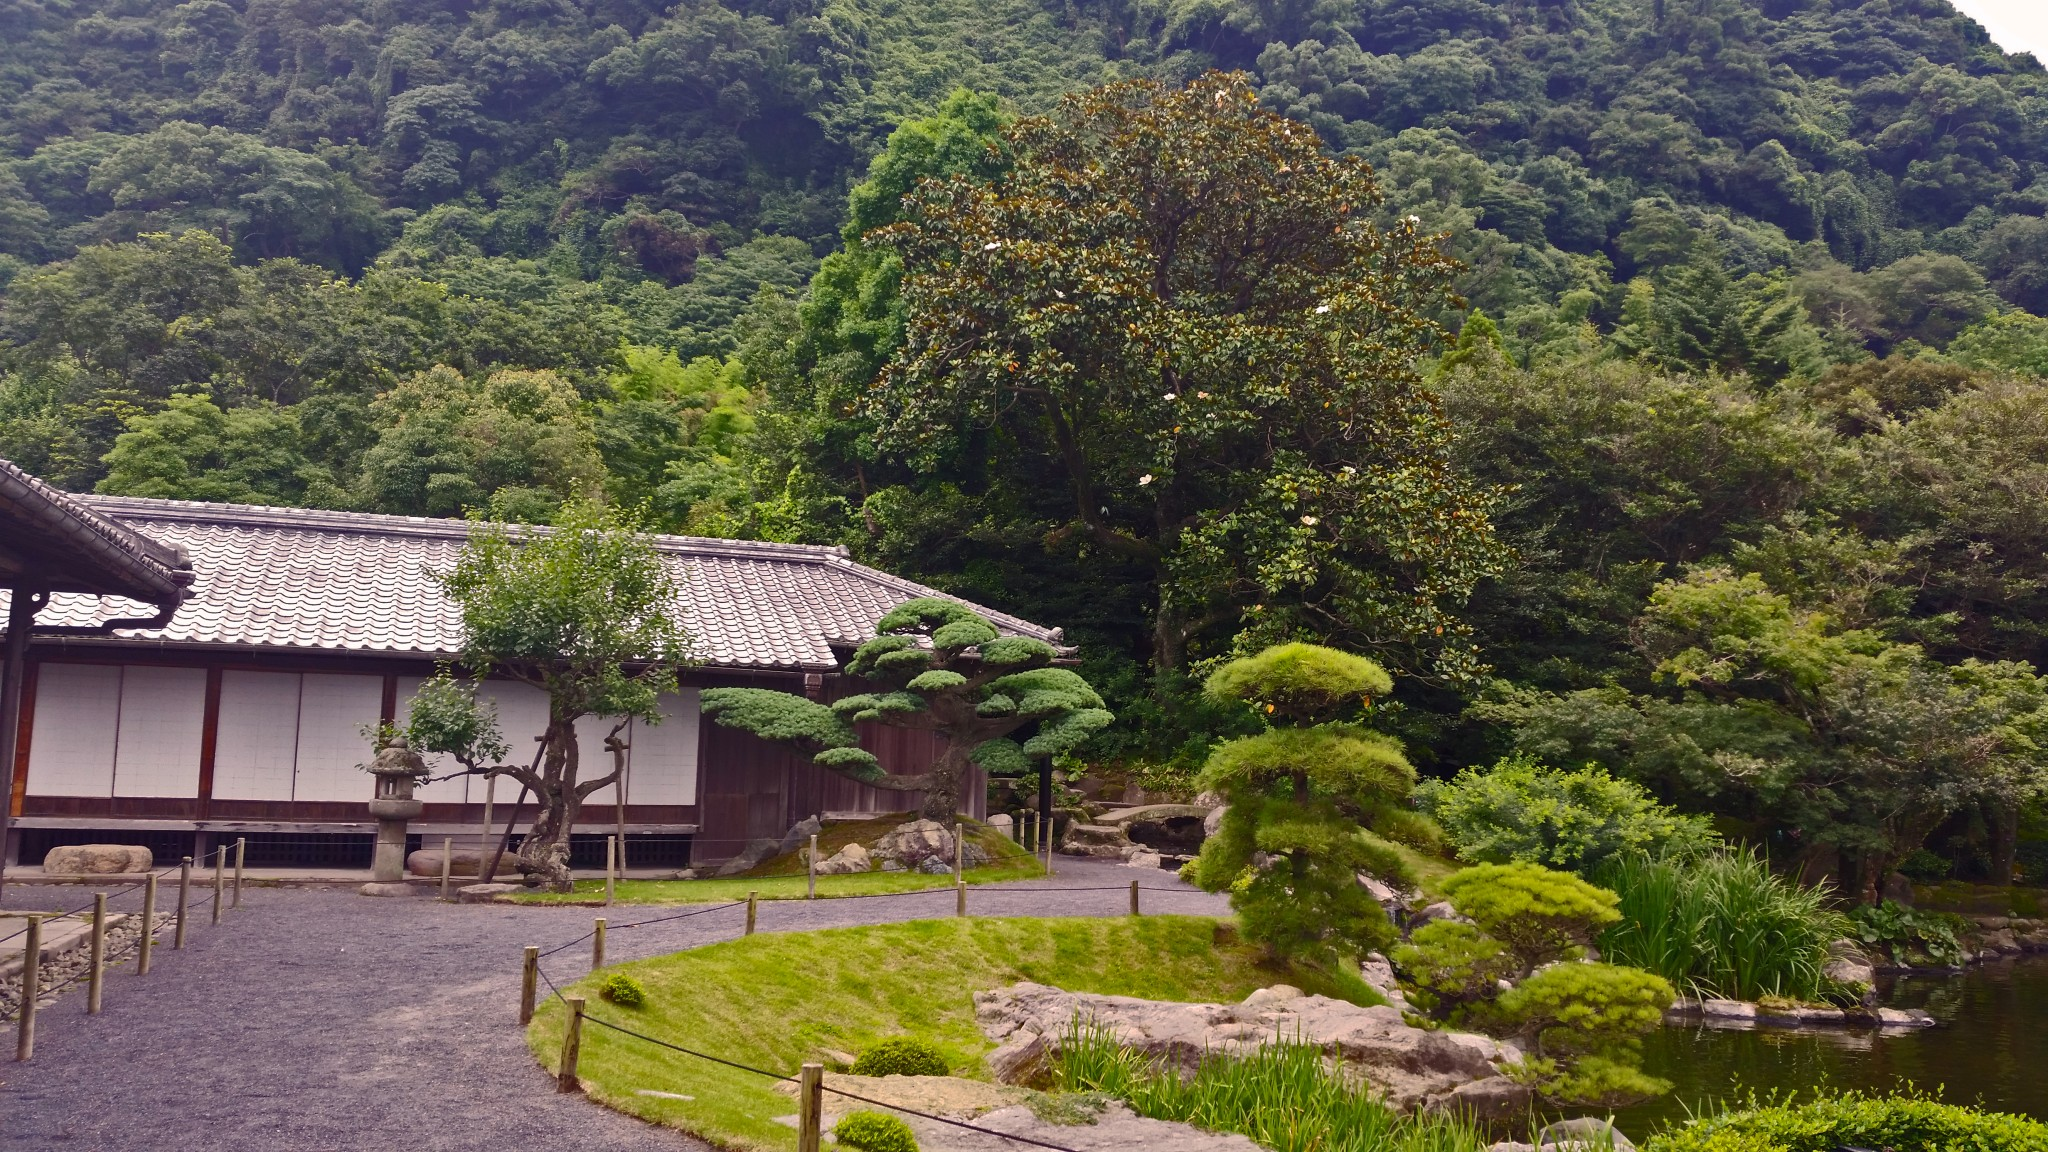 Sengan-en: How to Live Like a Lord in Past Japan